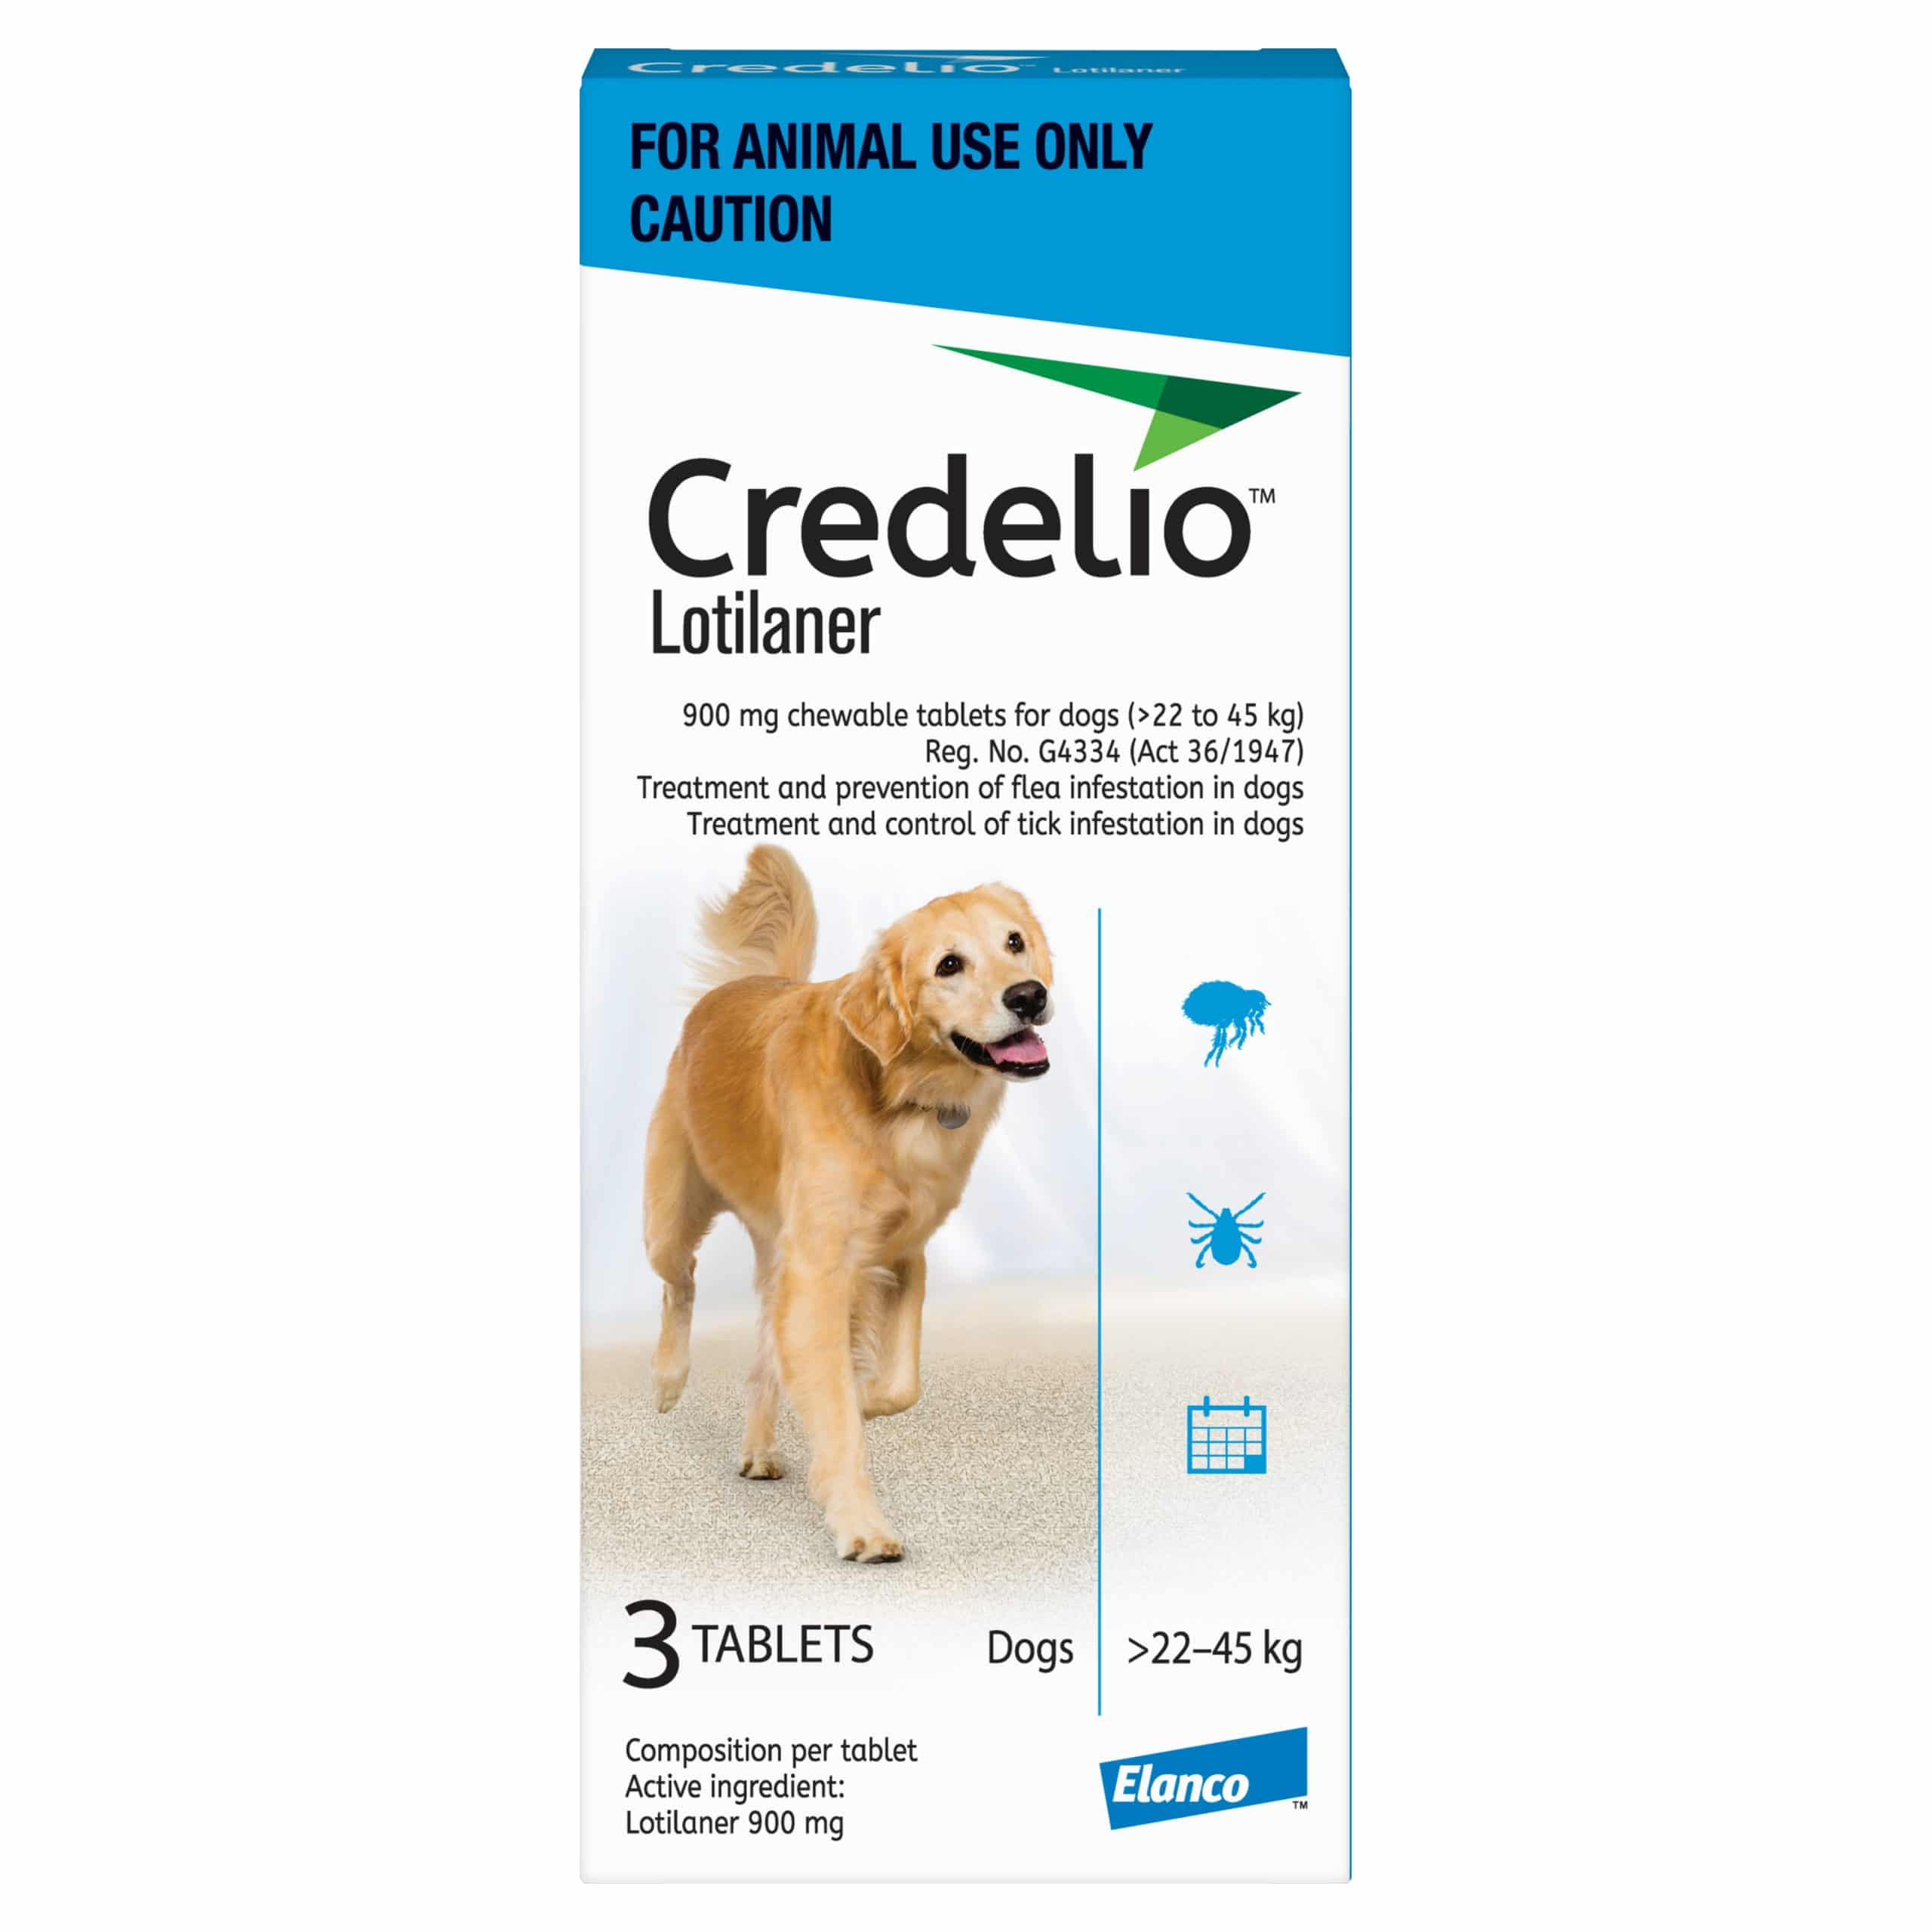 CREDELIO EXTRA LARGE 900MG (22 - 45KG) BLUE